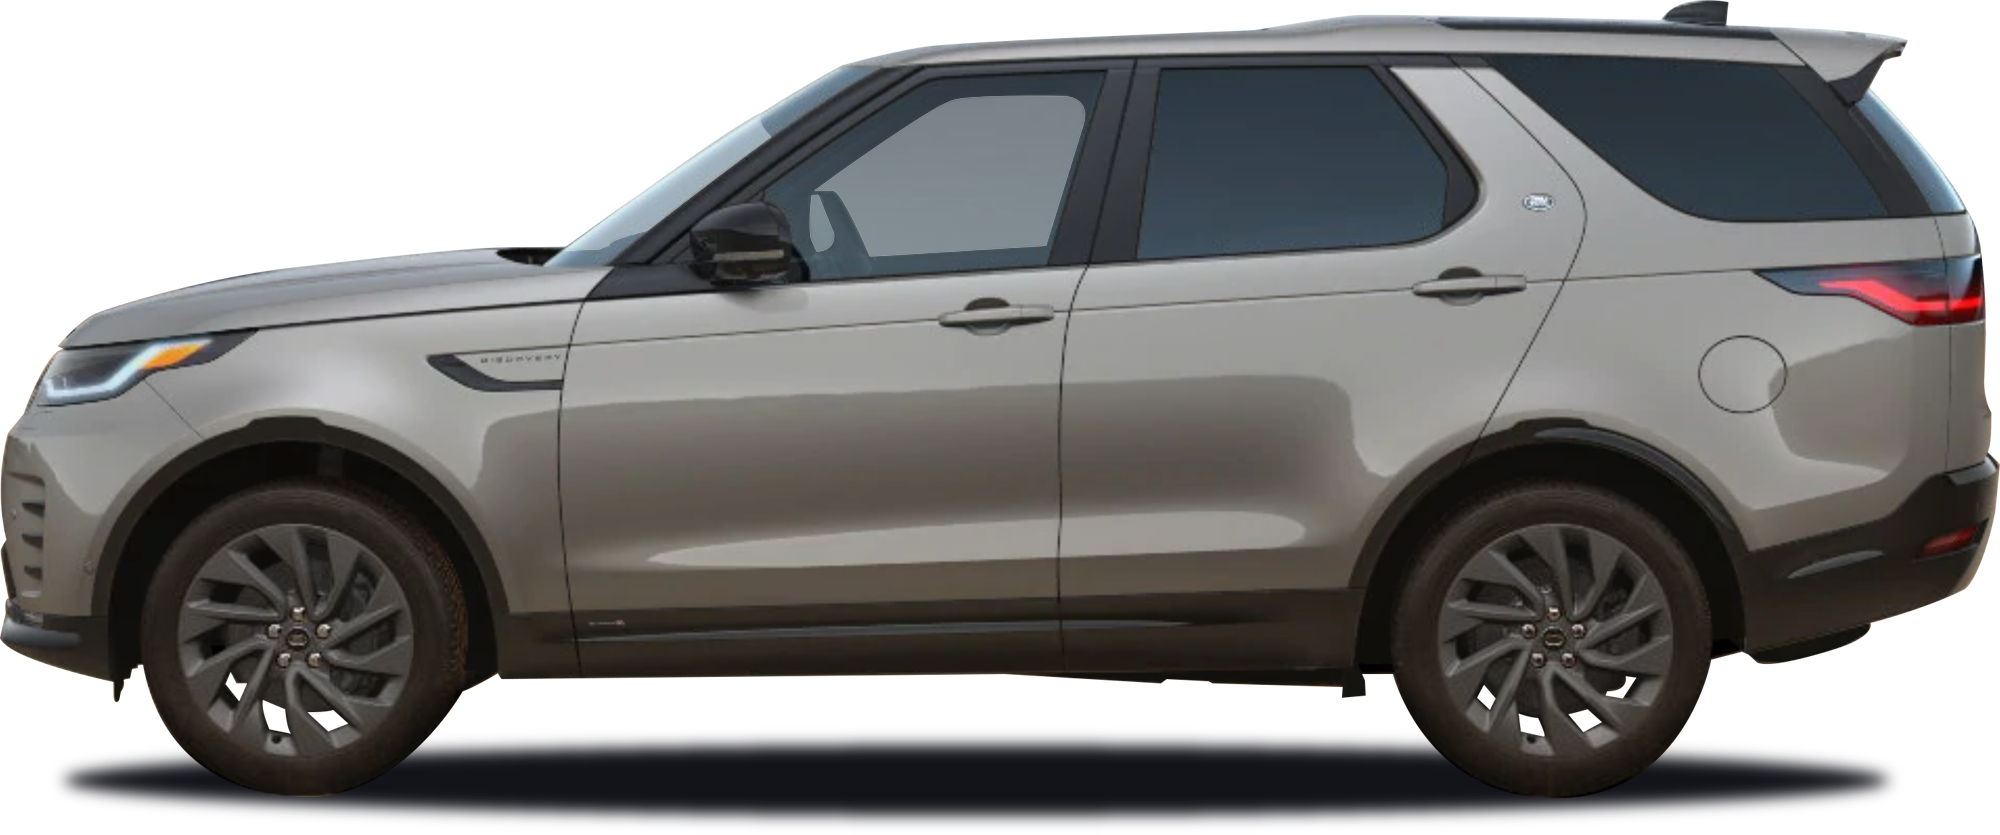 2021 Land Rover Discovery SUV P300 S R-Dynamic